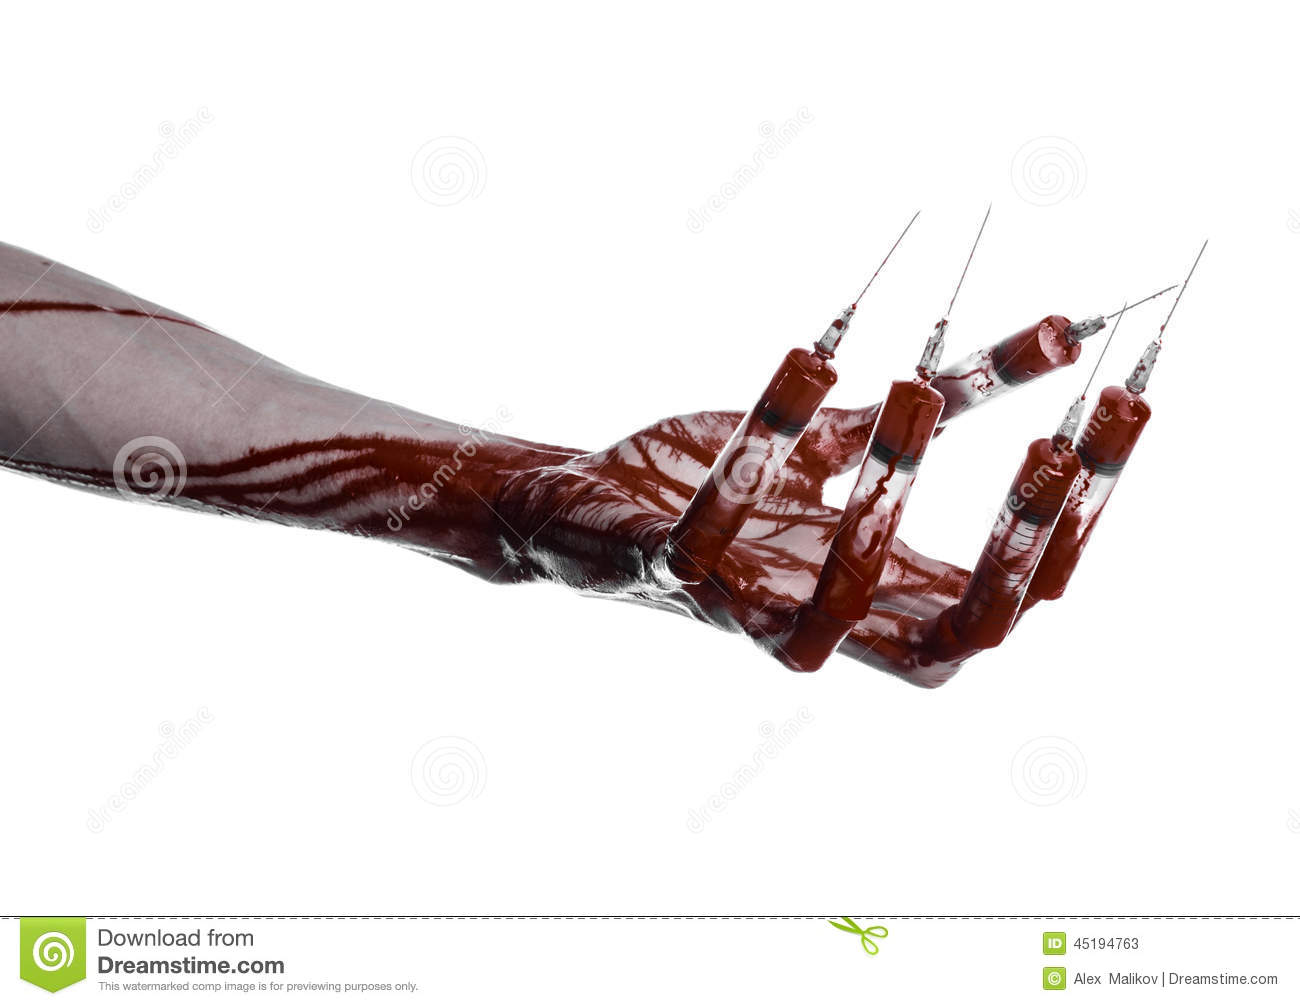 Stock Photo Bloody Hand Syringe Fingers Toes Syringes Hand Syringes Horrible Bloody Hand Halloween Theme Zombie Doctor White Image45194763 further Ingrown Facial Hair besides Olecranon Bursitis in addition Producto Idp 194 as well Percutaneous Disc Nucleoplasty. on needle doctor